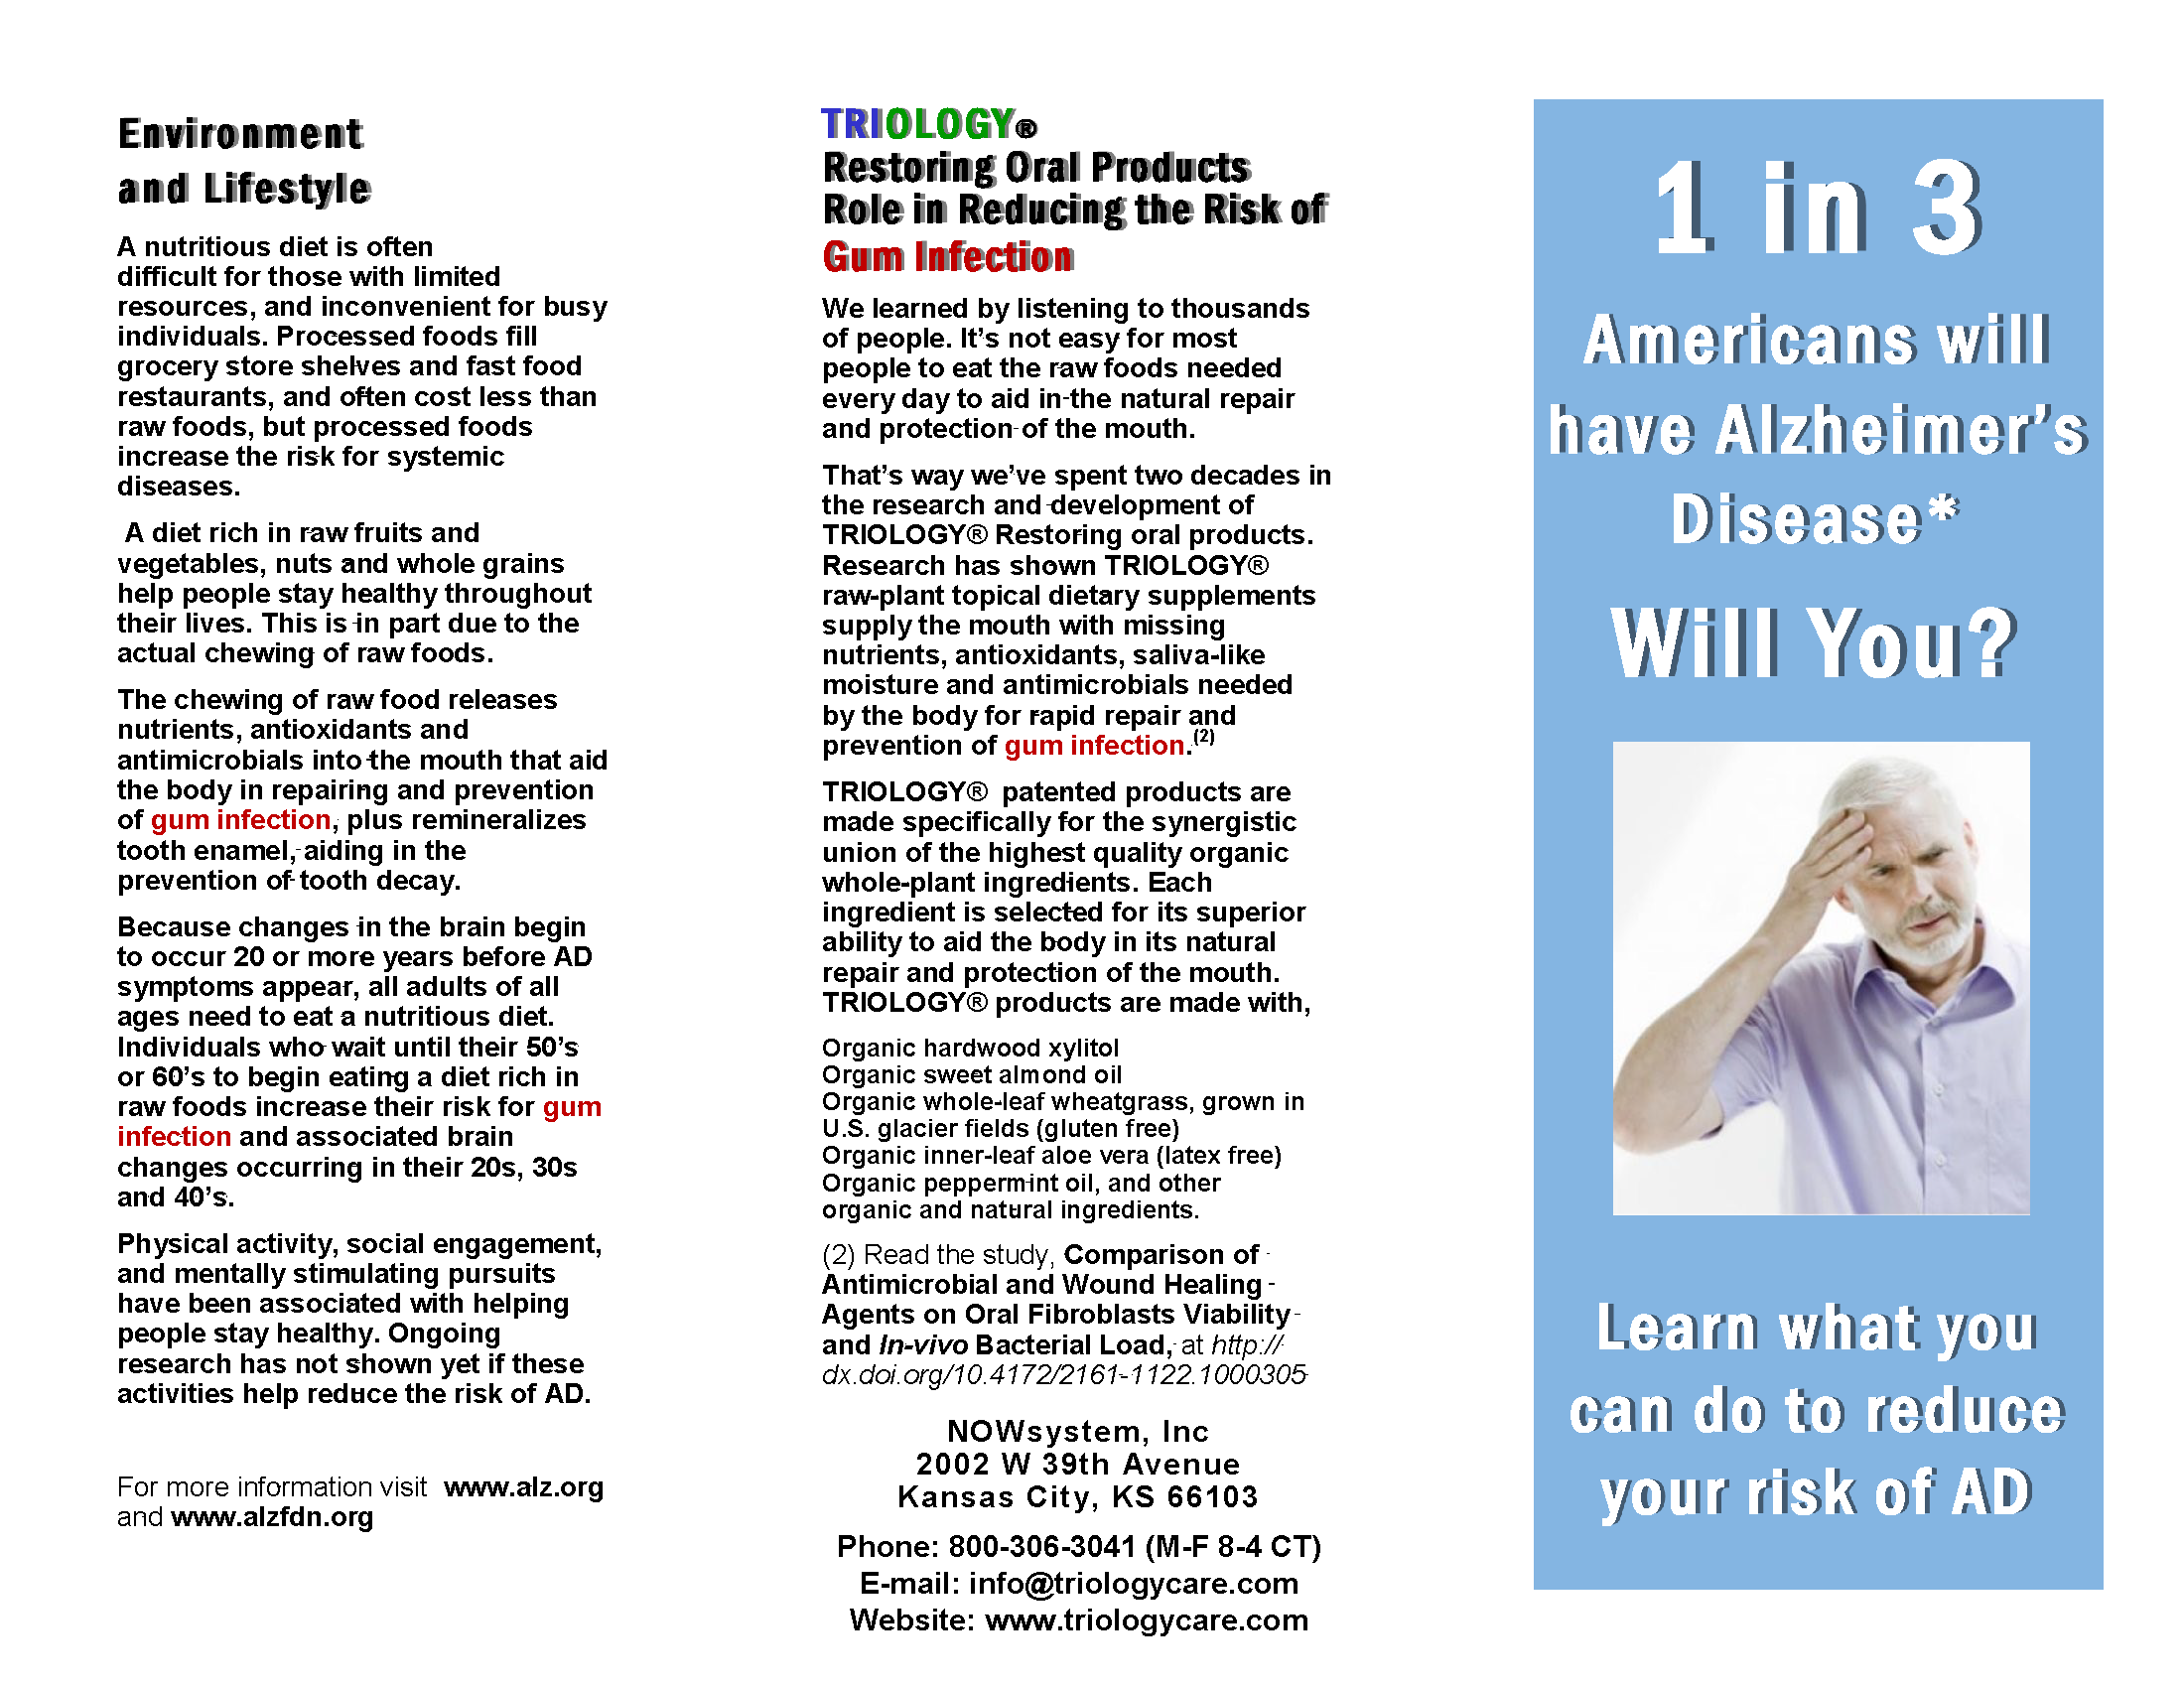 alzheimer-s-facts-and-prevention-brochure.triologycare.2-page-1.png